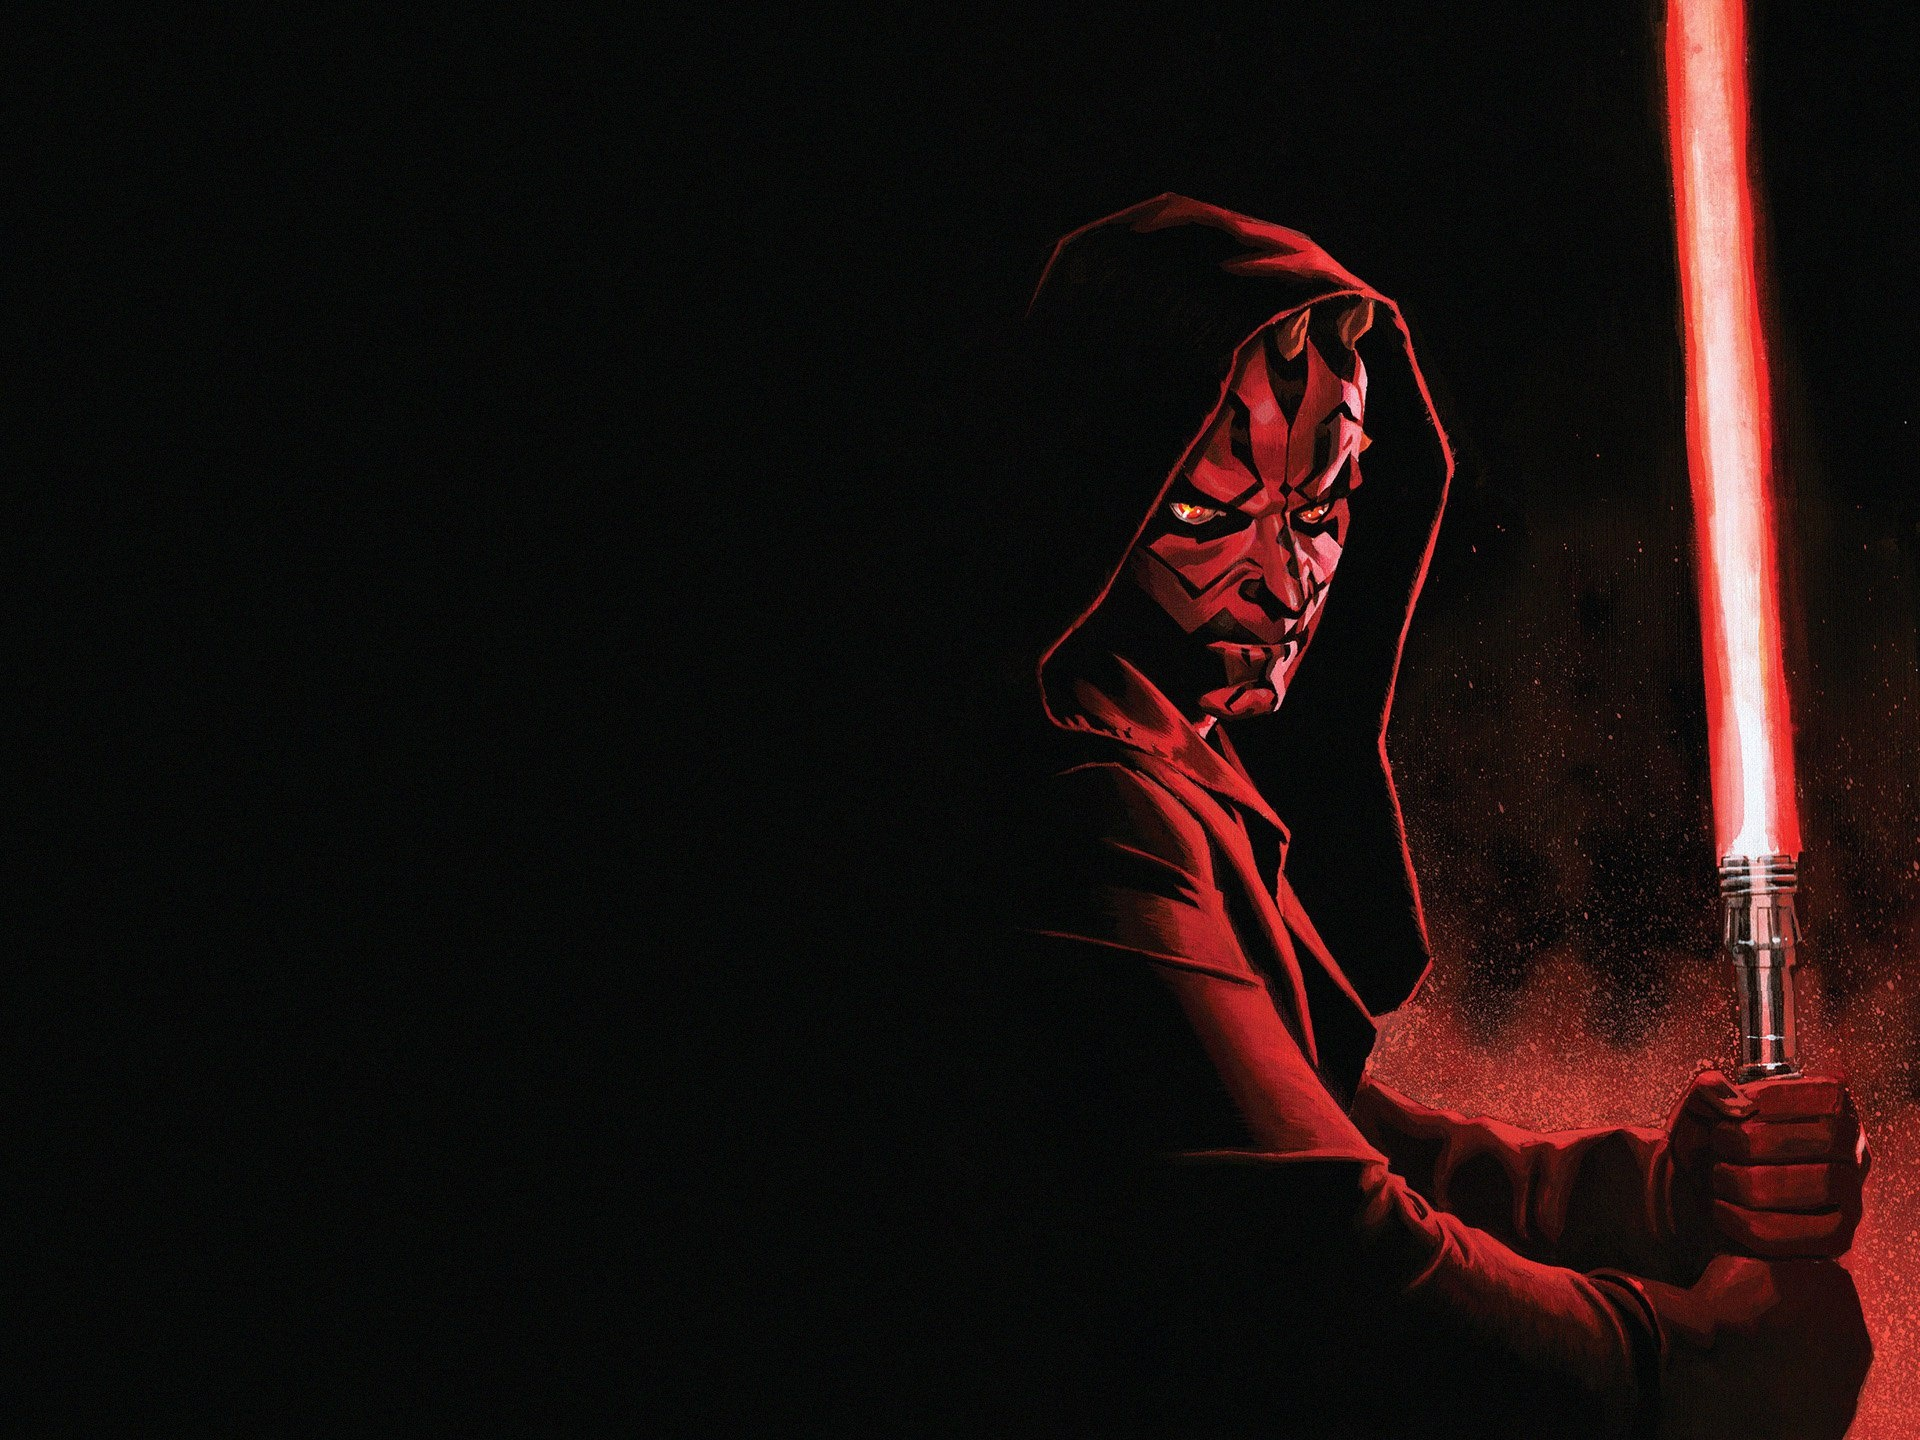 Star Wars, Darth Maul, Lightsaber, Art Picture 750x1334